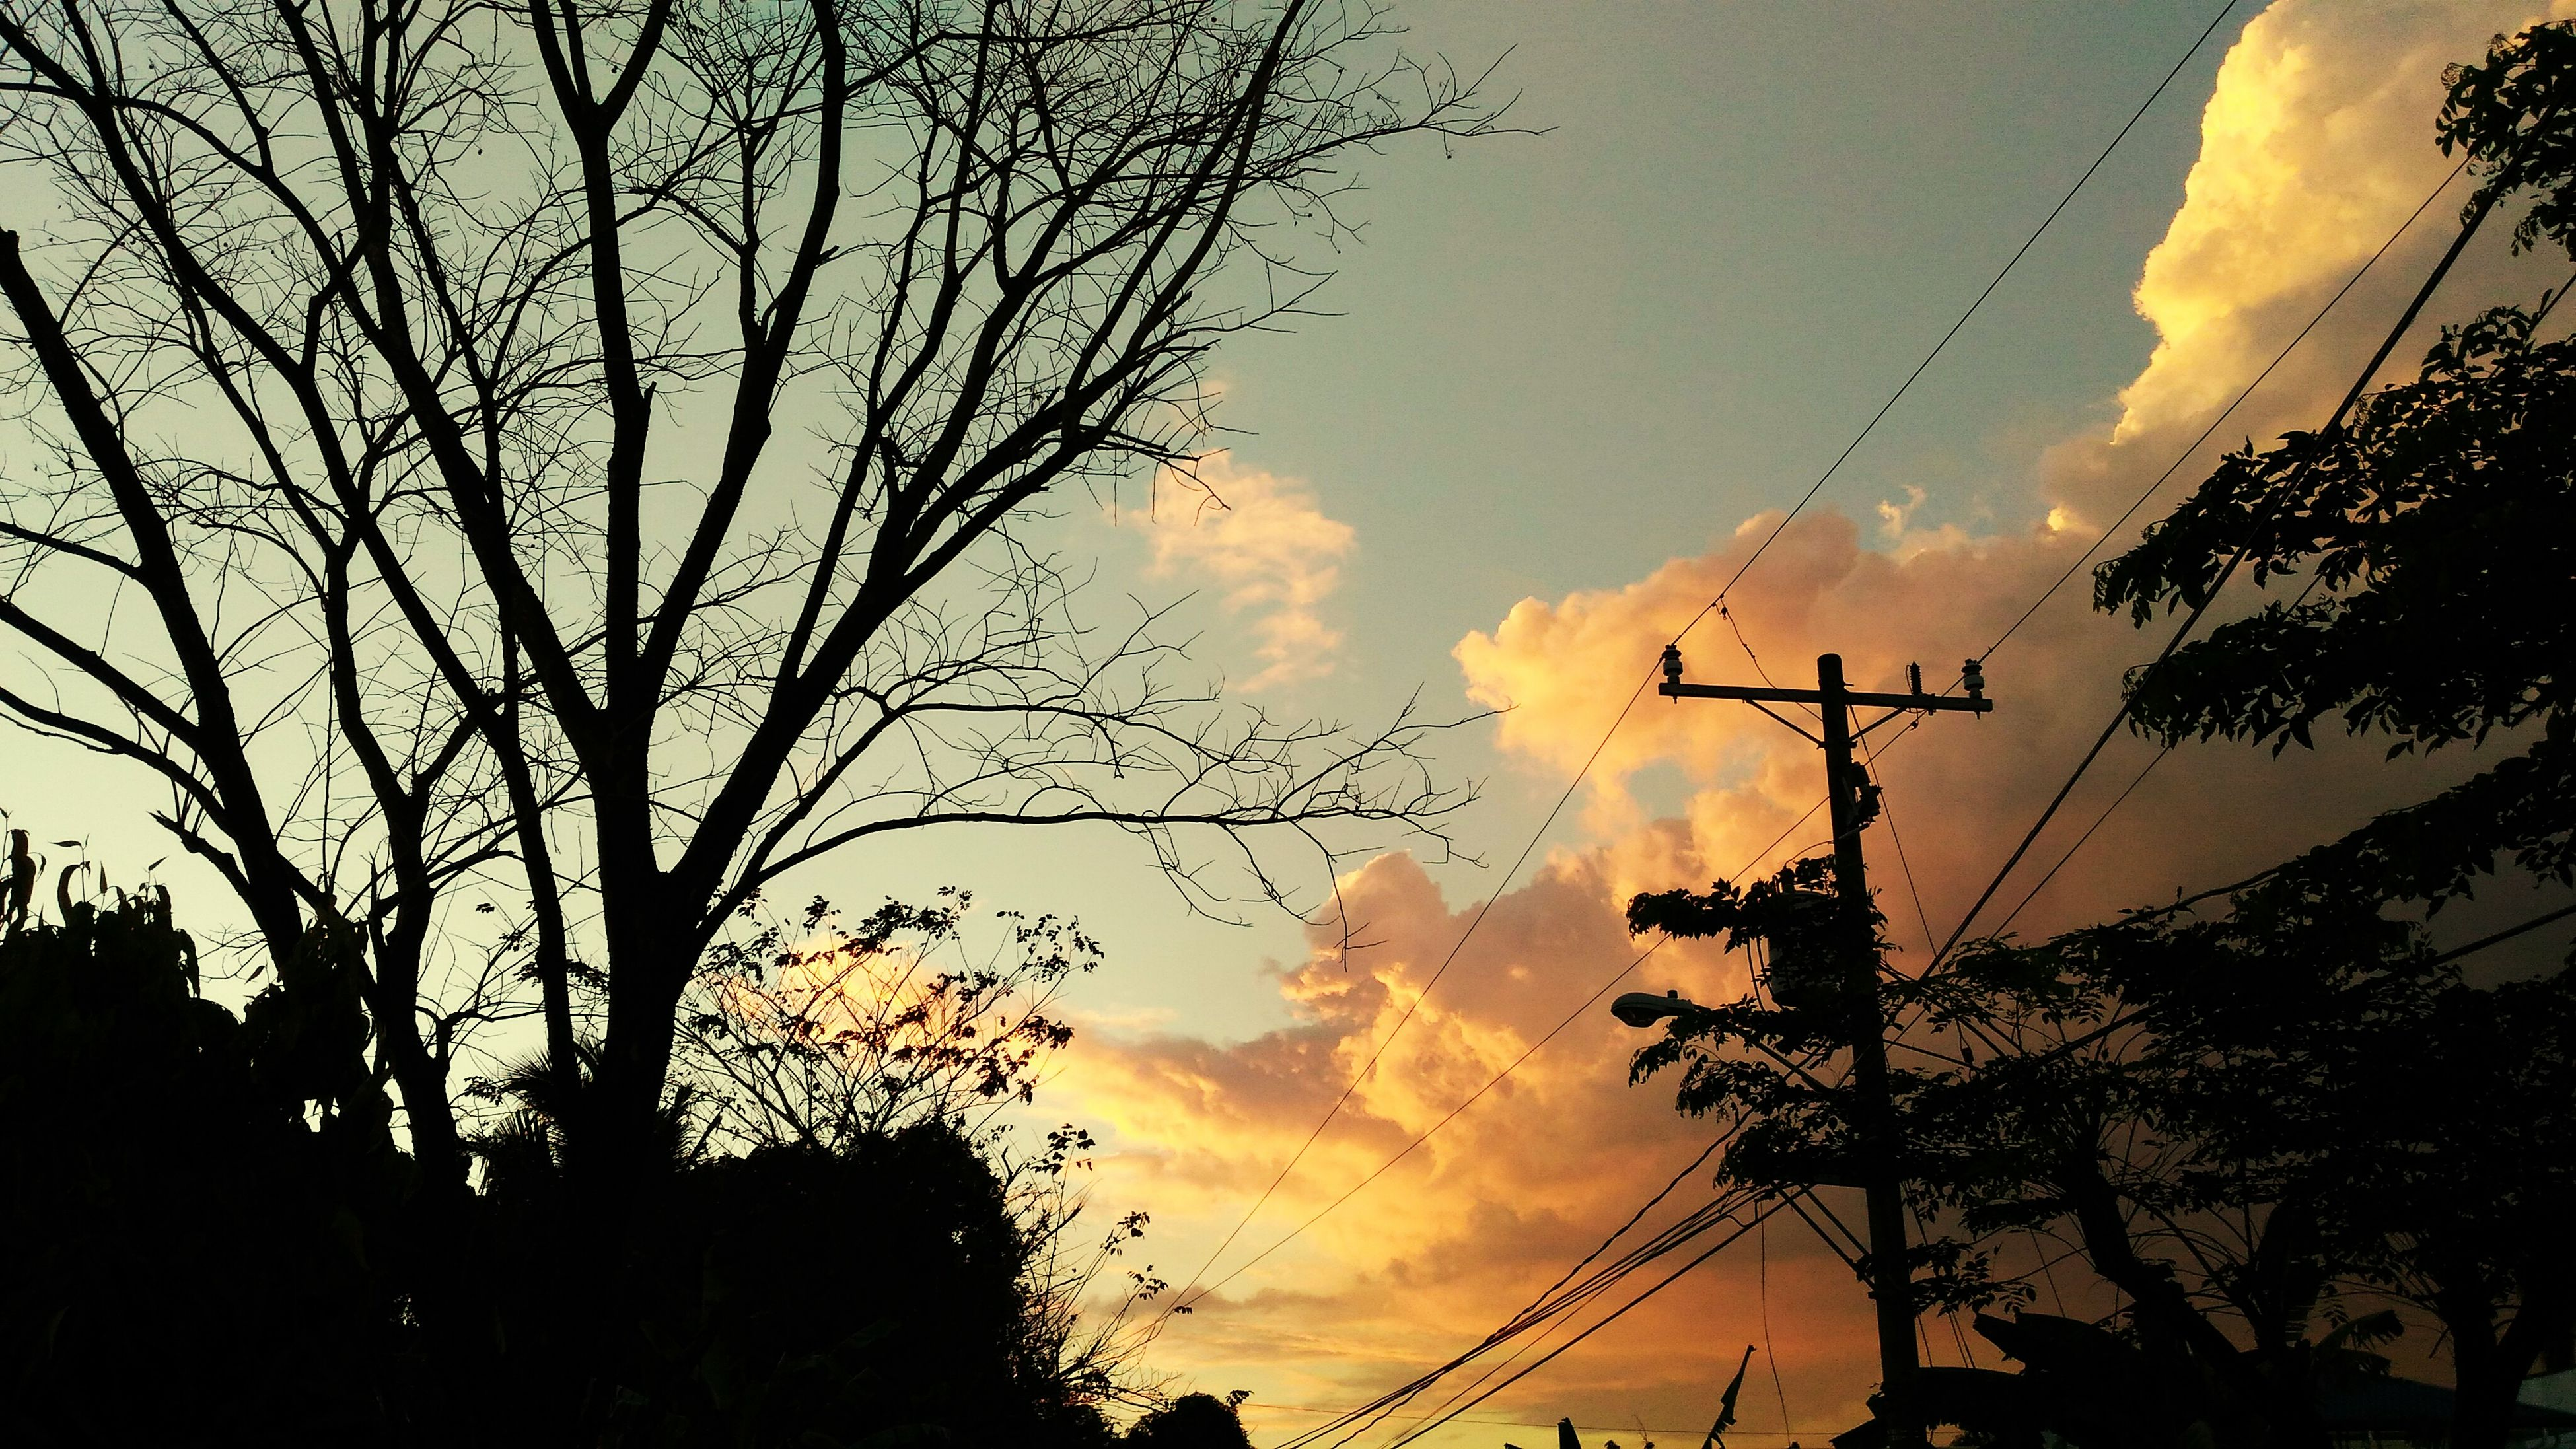 silhouette, sunset, low angle view, tree, sky, power line, electricity pylon, beauty in nature, nature, electricity, tranquility, scenics, cloud - sky, branch, growth, power supply, cable, tranquil scene, outdoors, dusk